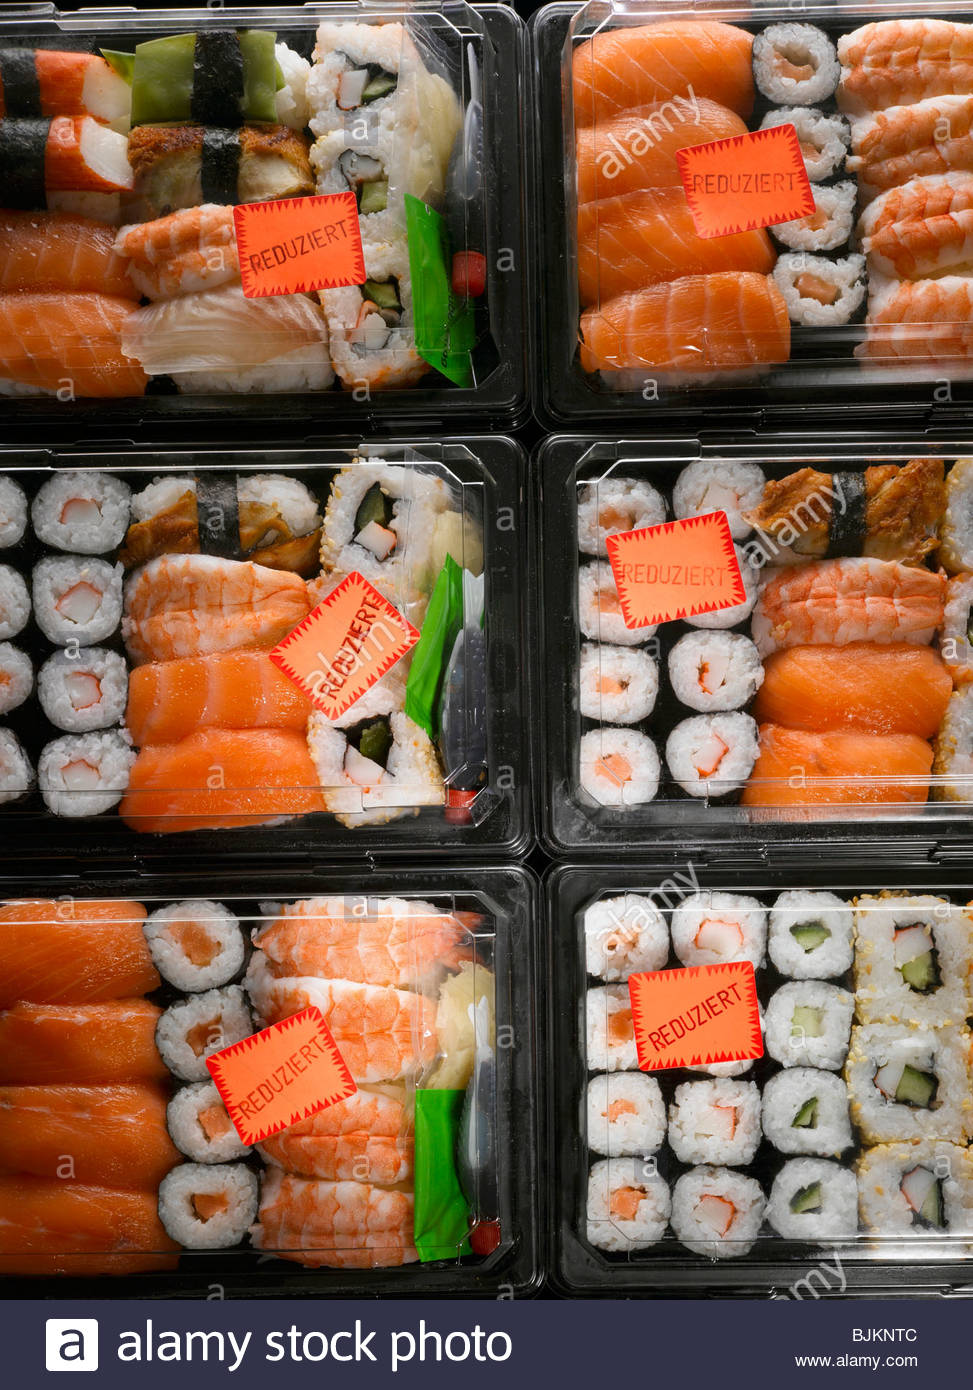 Sushi in plastic boxes with 'Reduced' labels - Stock Image